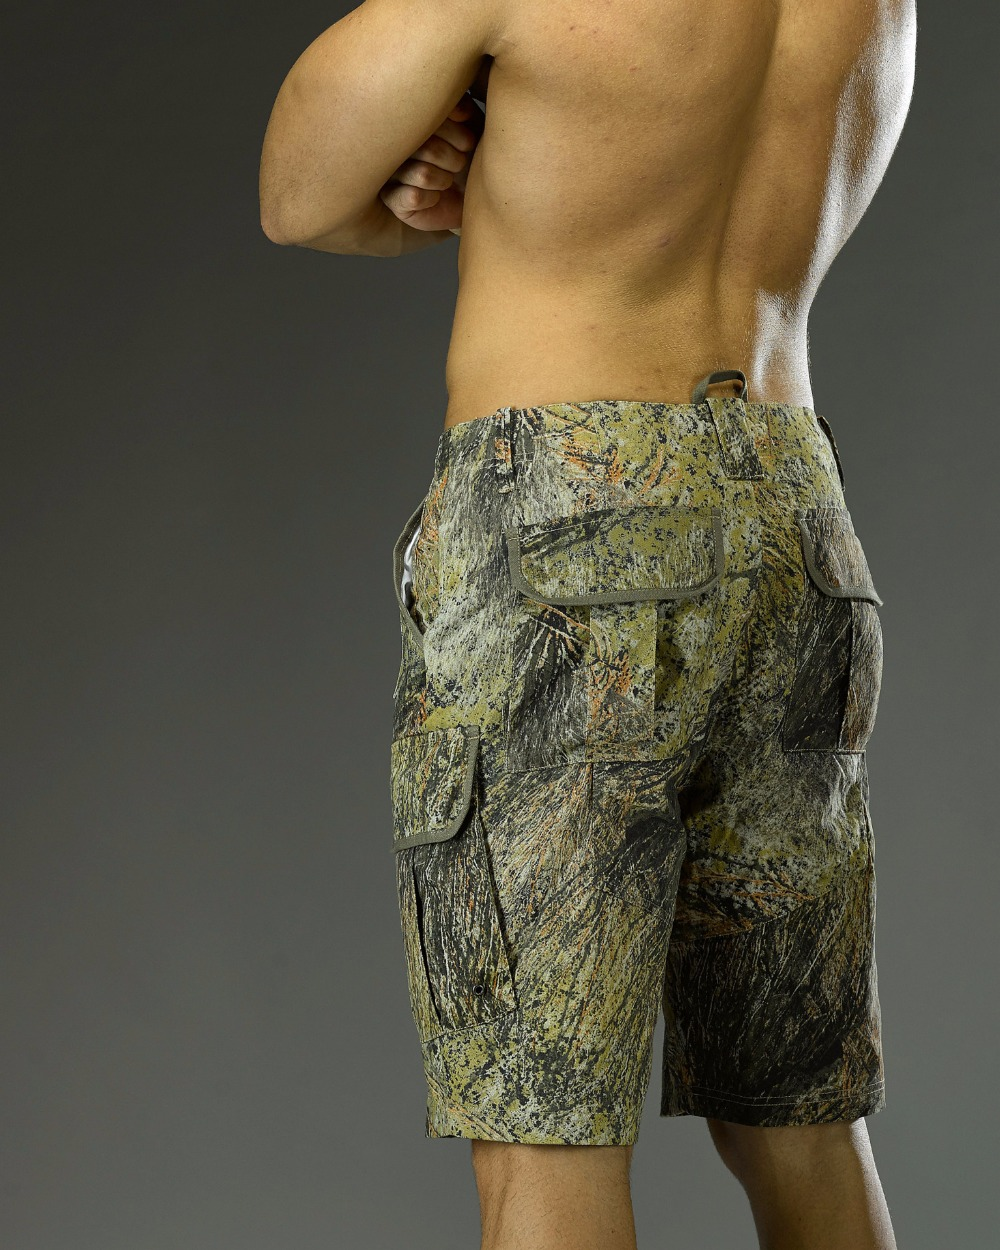 40a6a01d0d 2018 New Multicam Tropic Military Tactical Shorts Camouflage Cargo Pants  Men hunting hiking shorts Sniper Summer brethable pant-in Hiking Shorts  from Sports ...